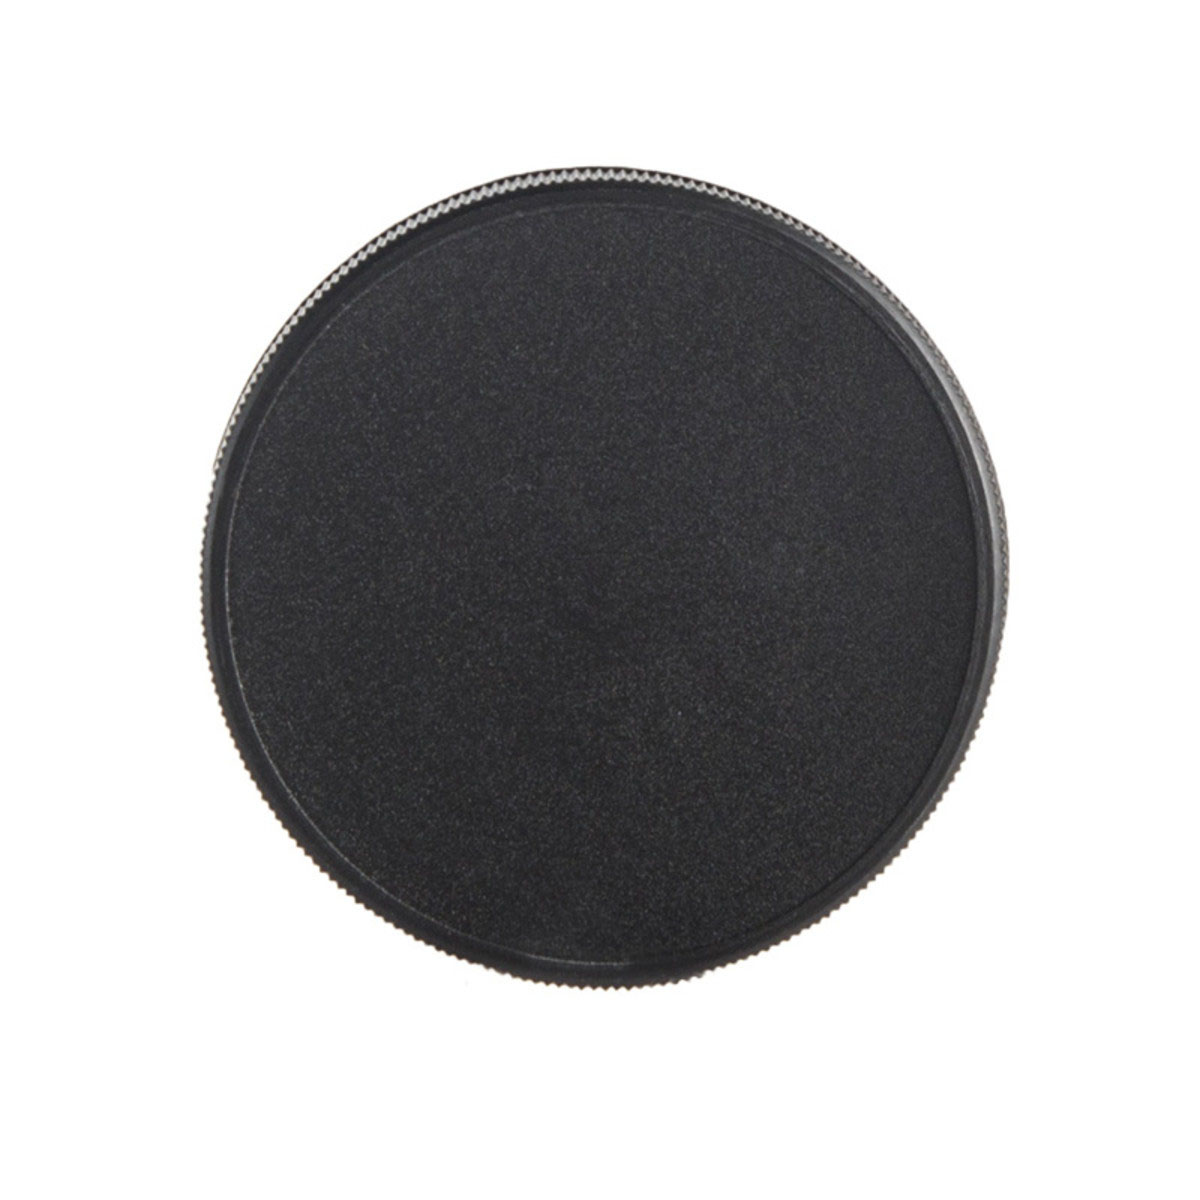 Black Lid For 10oz Standard Glass Jar (72 Qty.)